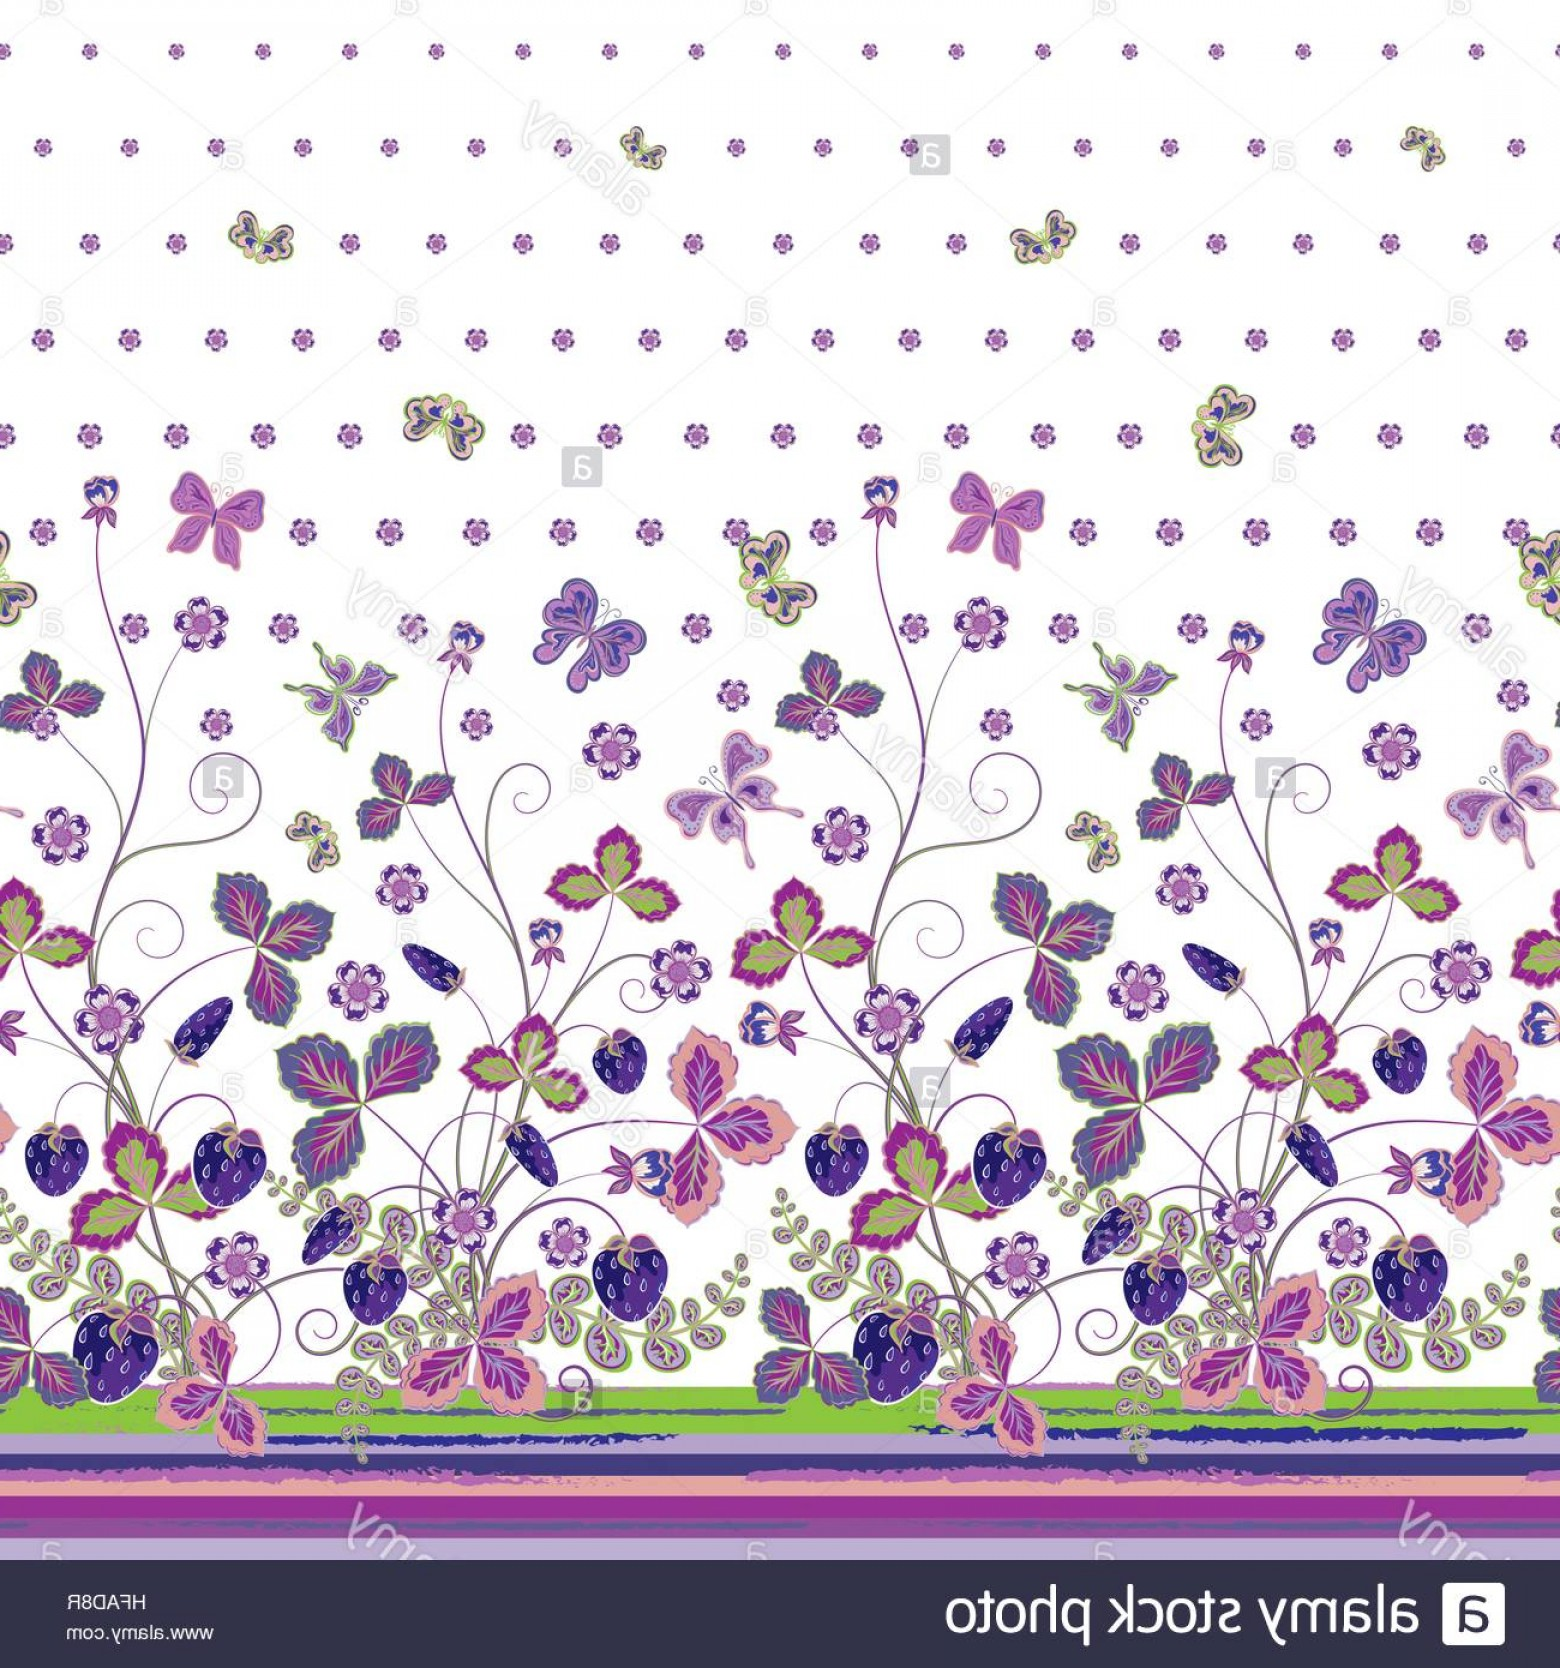 Purple Butterfly Wallpaper Vector: Stock Photo Vintage Berries Leaves Fruit Moth Butterfly Wallpaper Vertical Seamless